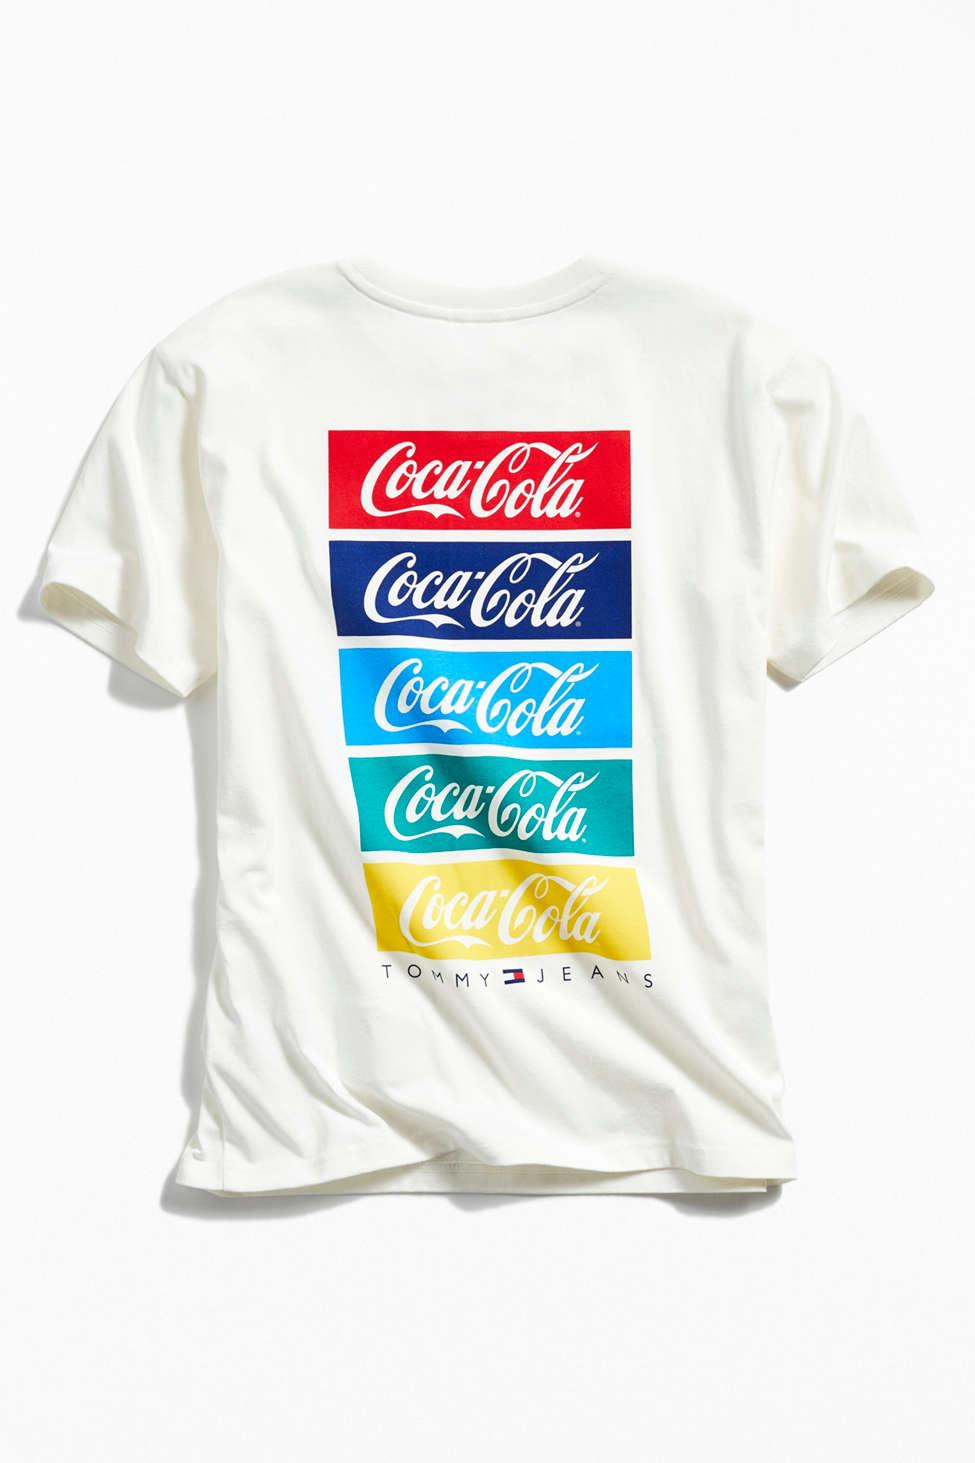 7f16c9af1 Tommy Hilfiger X Coca-cola Repeat Tee in White for Men - Lyst